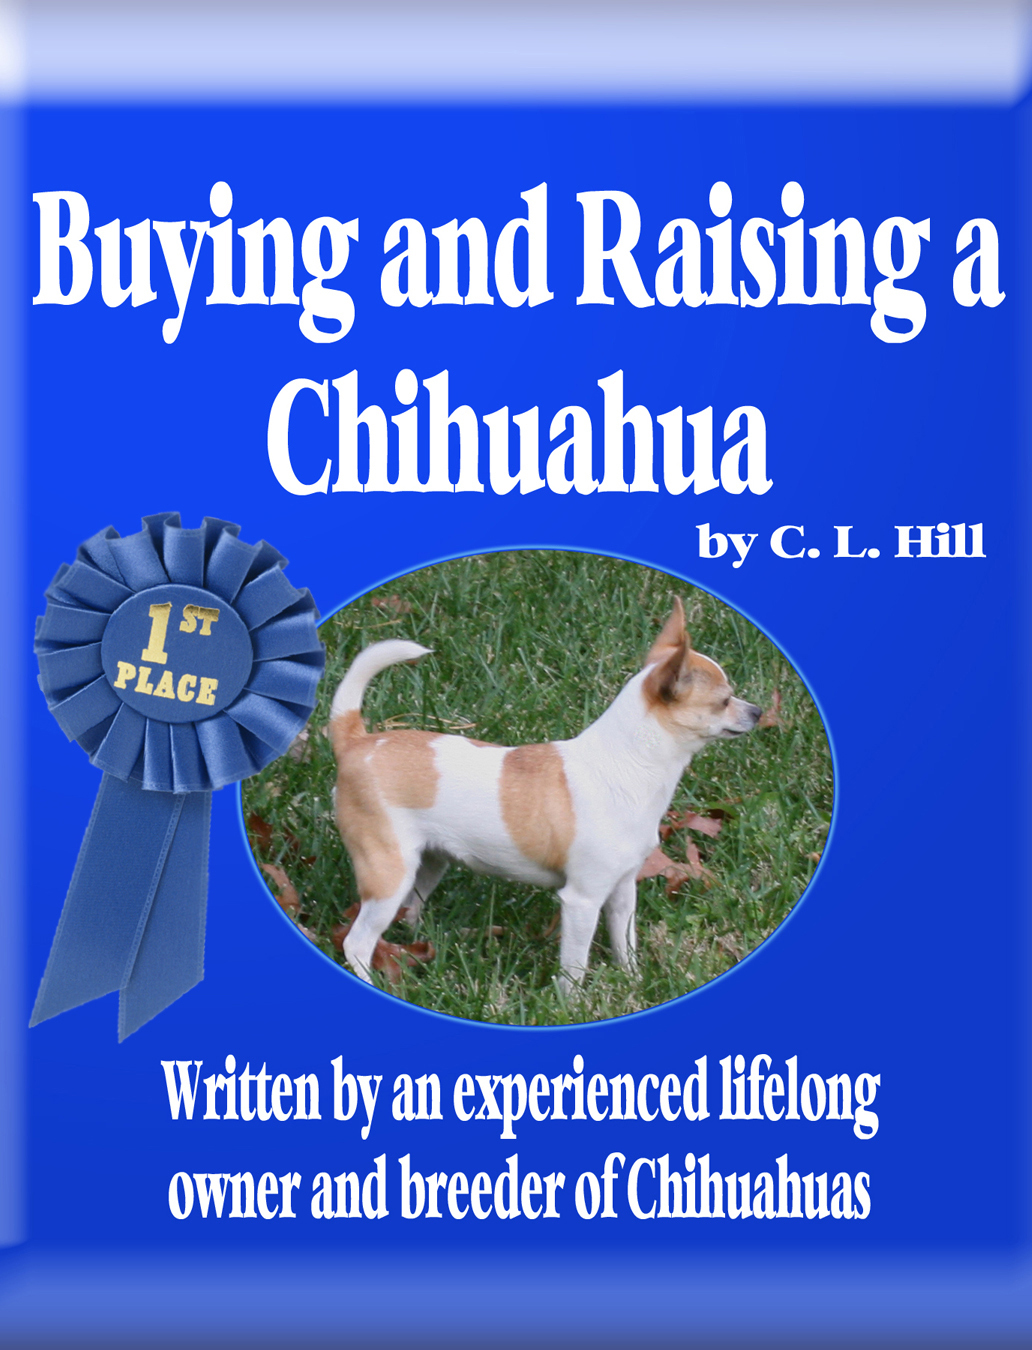 Buying and Raising a Chihuahua